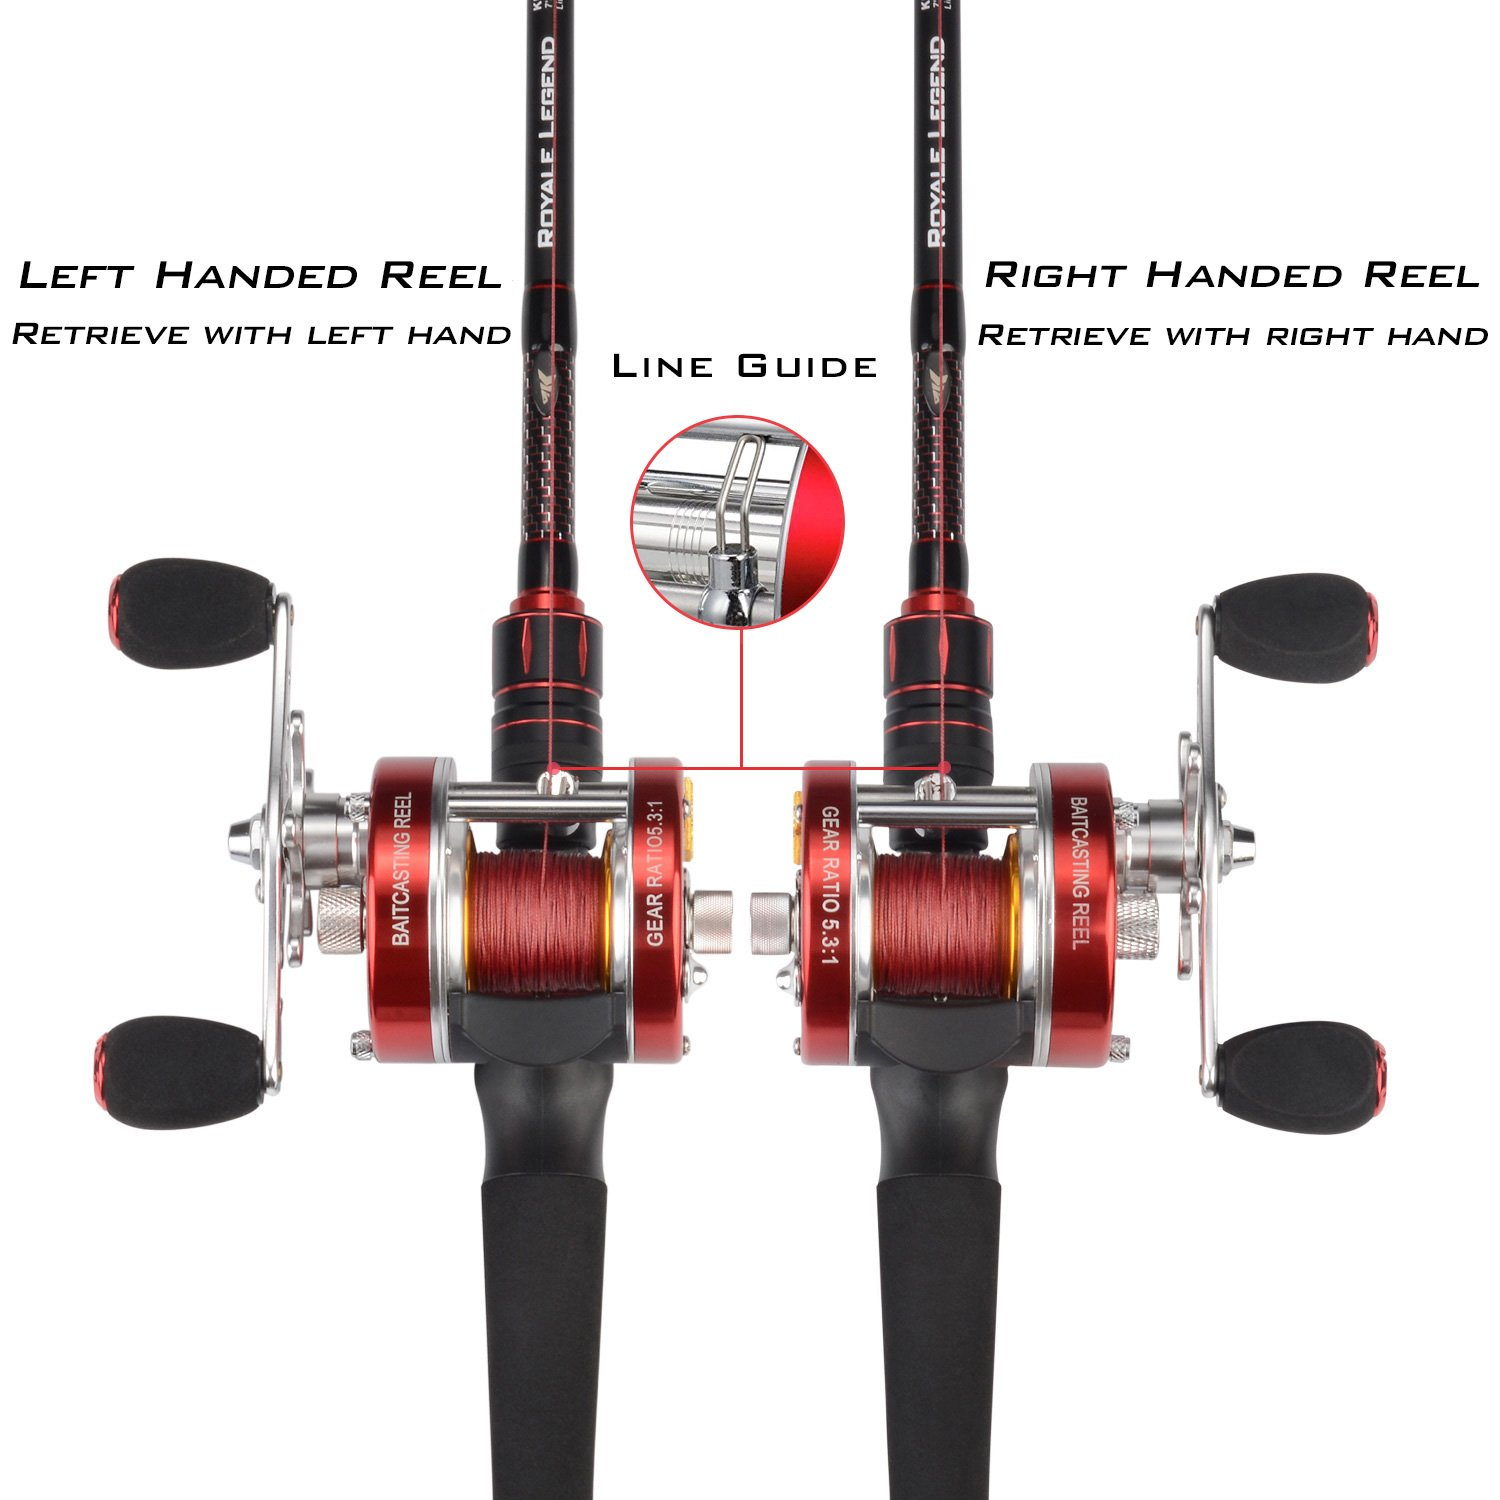 KastKing Rover Round Baitcasting Reel - No. 1 Rated Conventional Reel - Carbon Fiber Star Drag - Reinforced Metal Body by KastKing (Image #3)